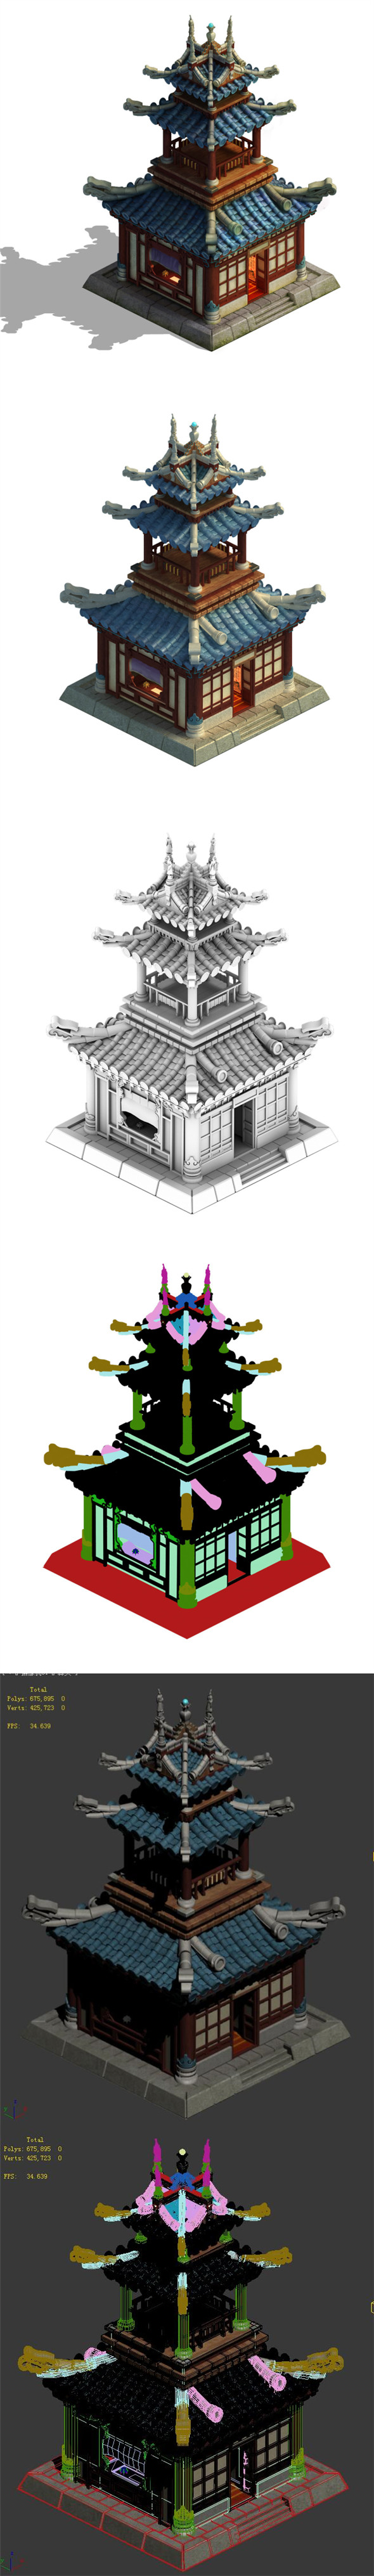 Architecture Palace - Tower - 3DOcean Item for Sale